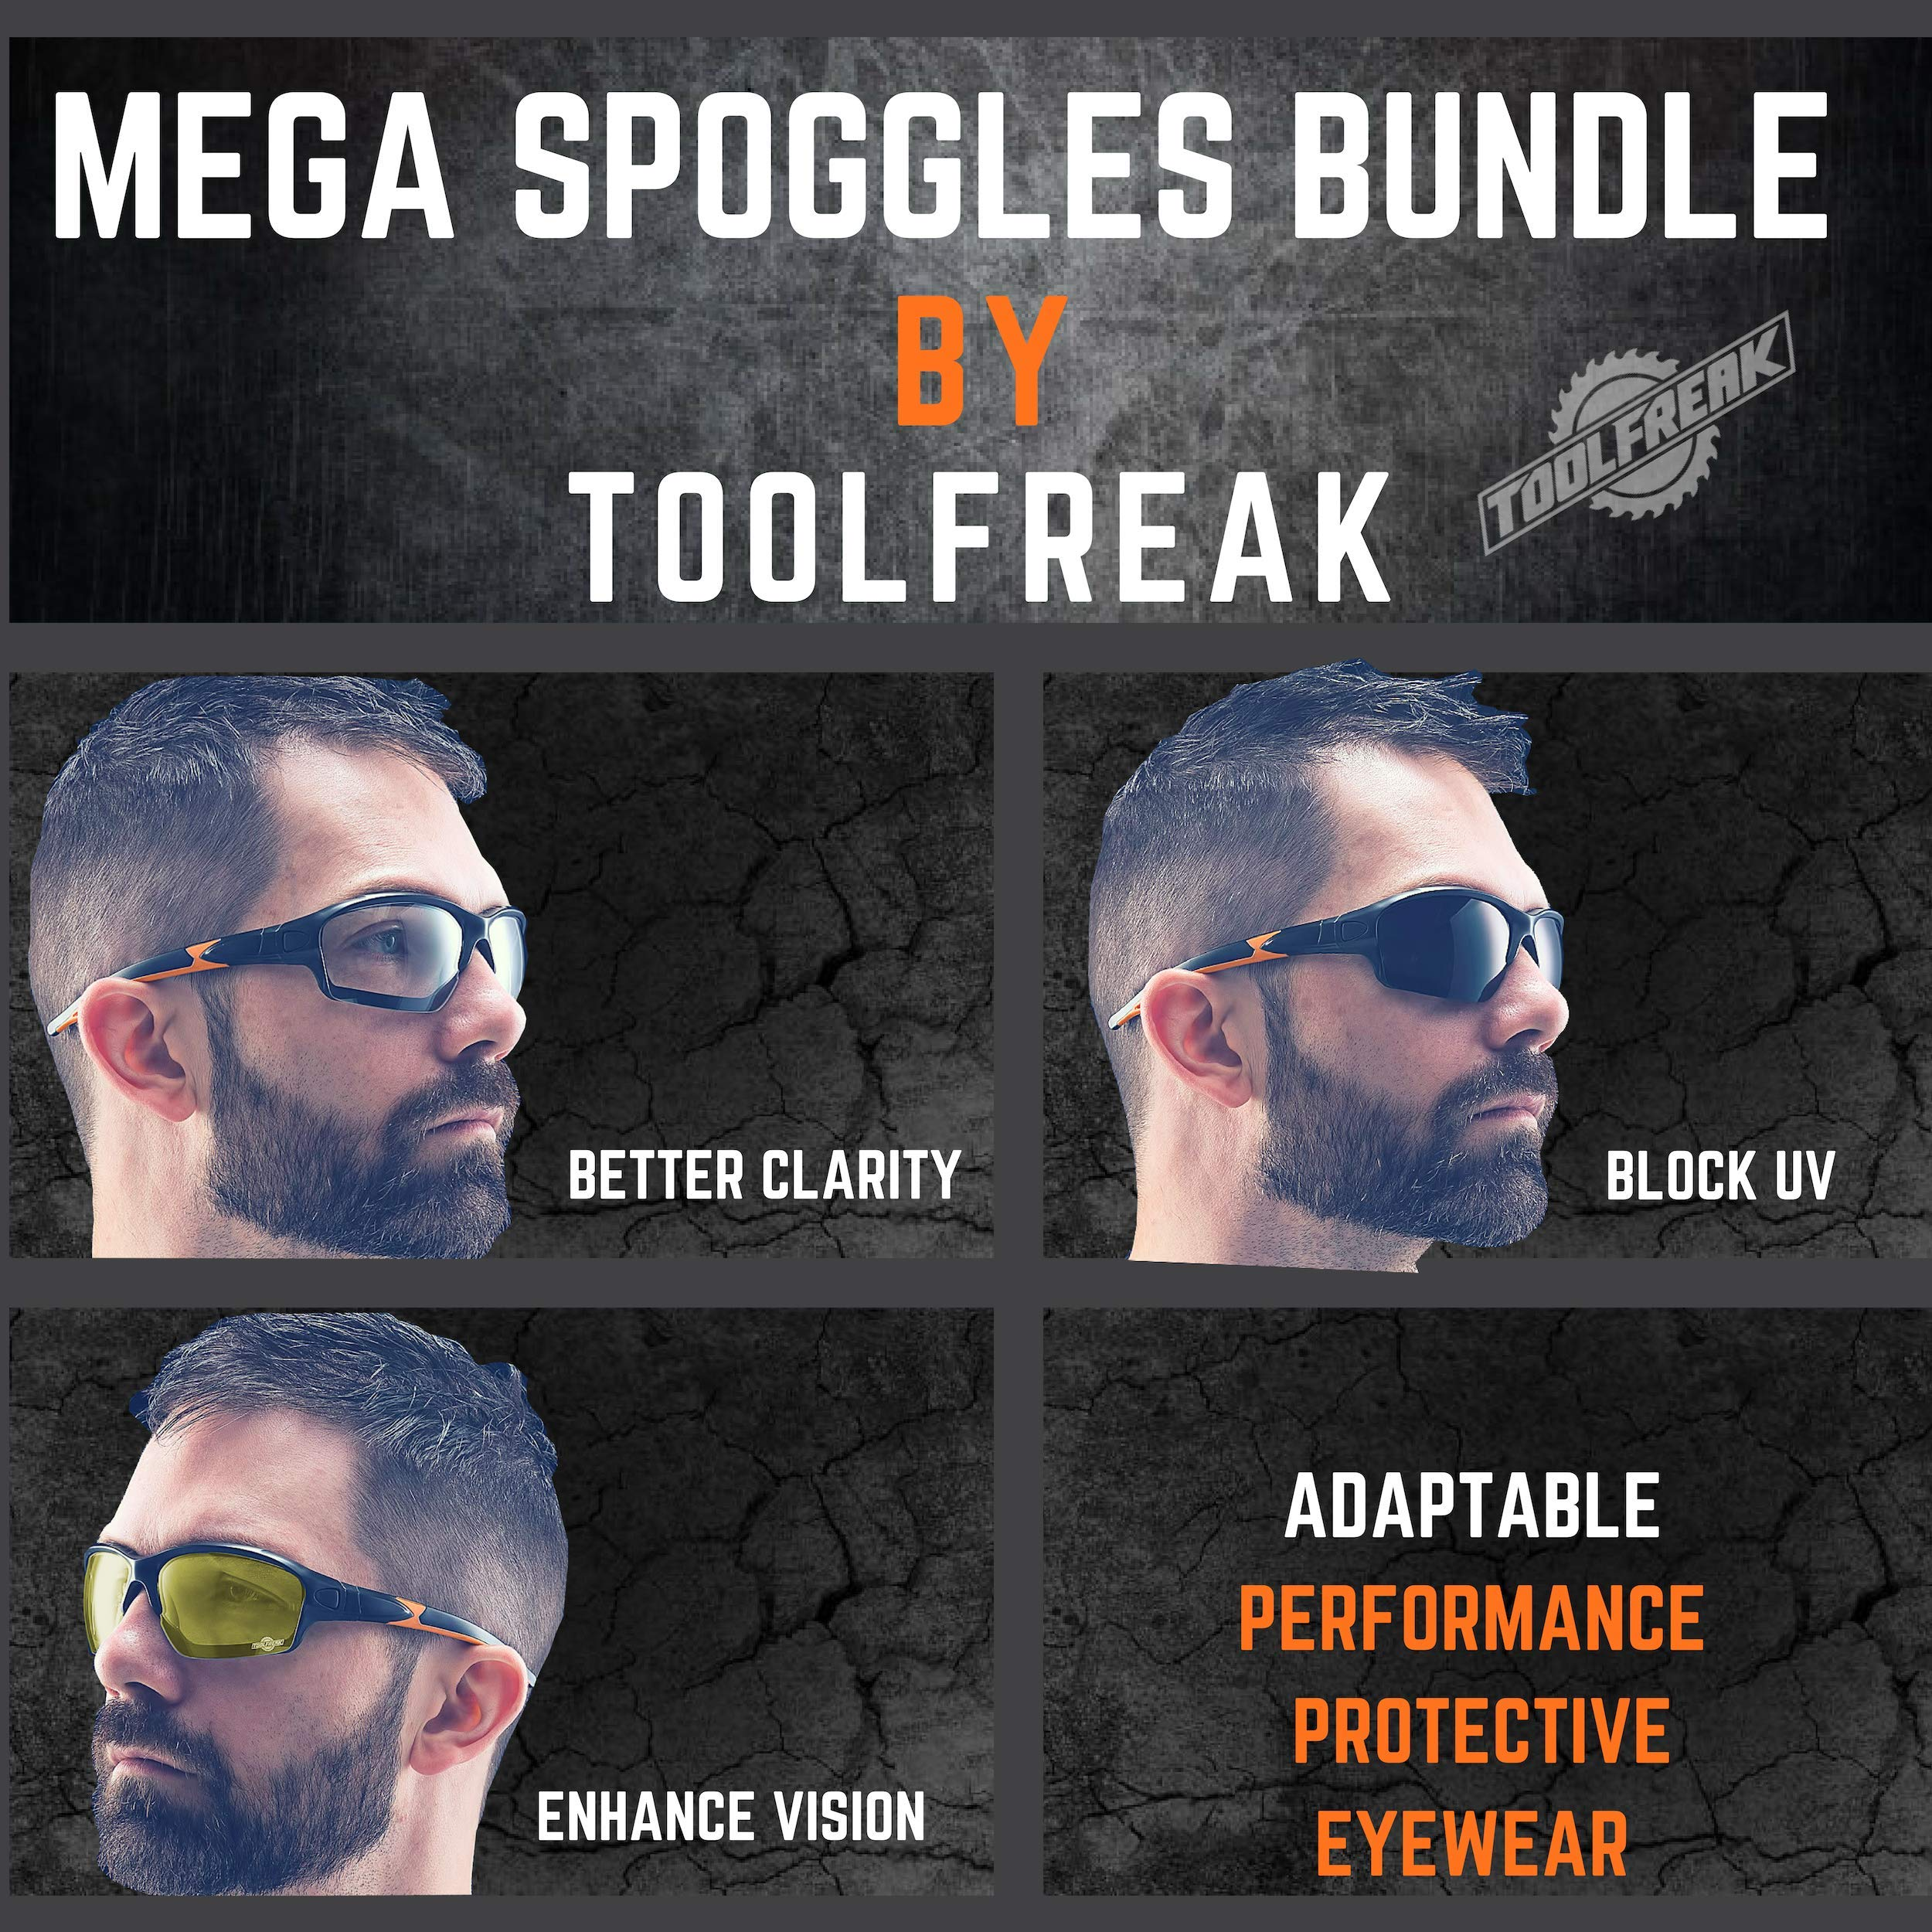 ToolFreak Spoggles Work and Sports Safety Glasses, Clear, Smoke and Yellow Tinted Lens Mega Bundle Offer, Foam Padded, ANSI z87 Rated with Impact and UV Protection by ToolFreak (Image #4)